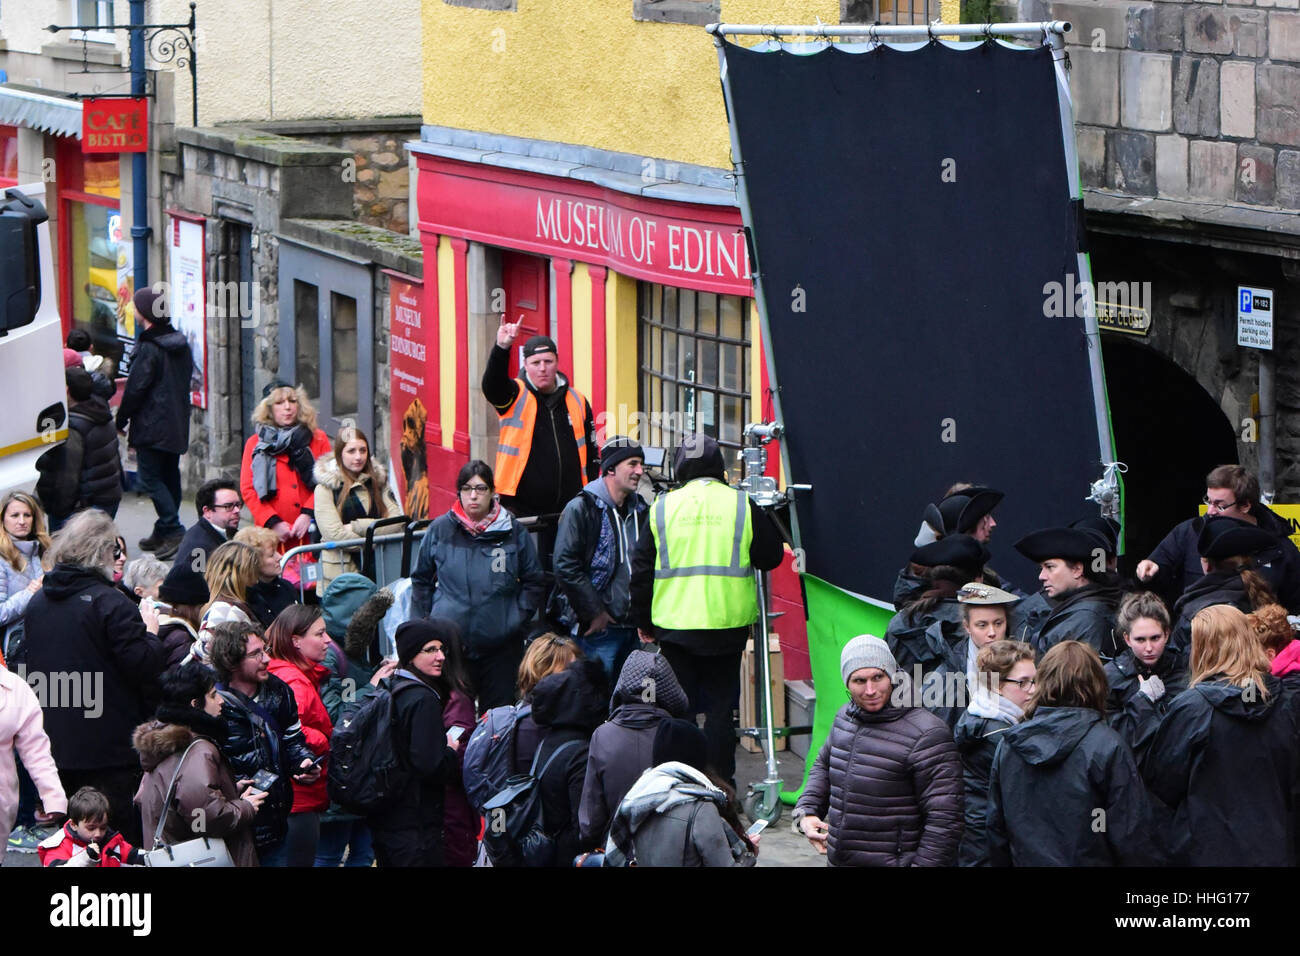 Edinburgh, Scotland, UK. 19th Jan, 2017.  Fans of the 'Outlander' TV series crowd round on the fringes of - Stock Image